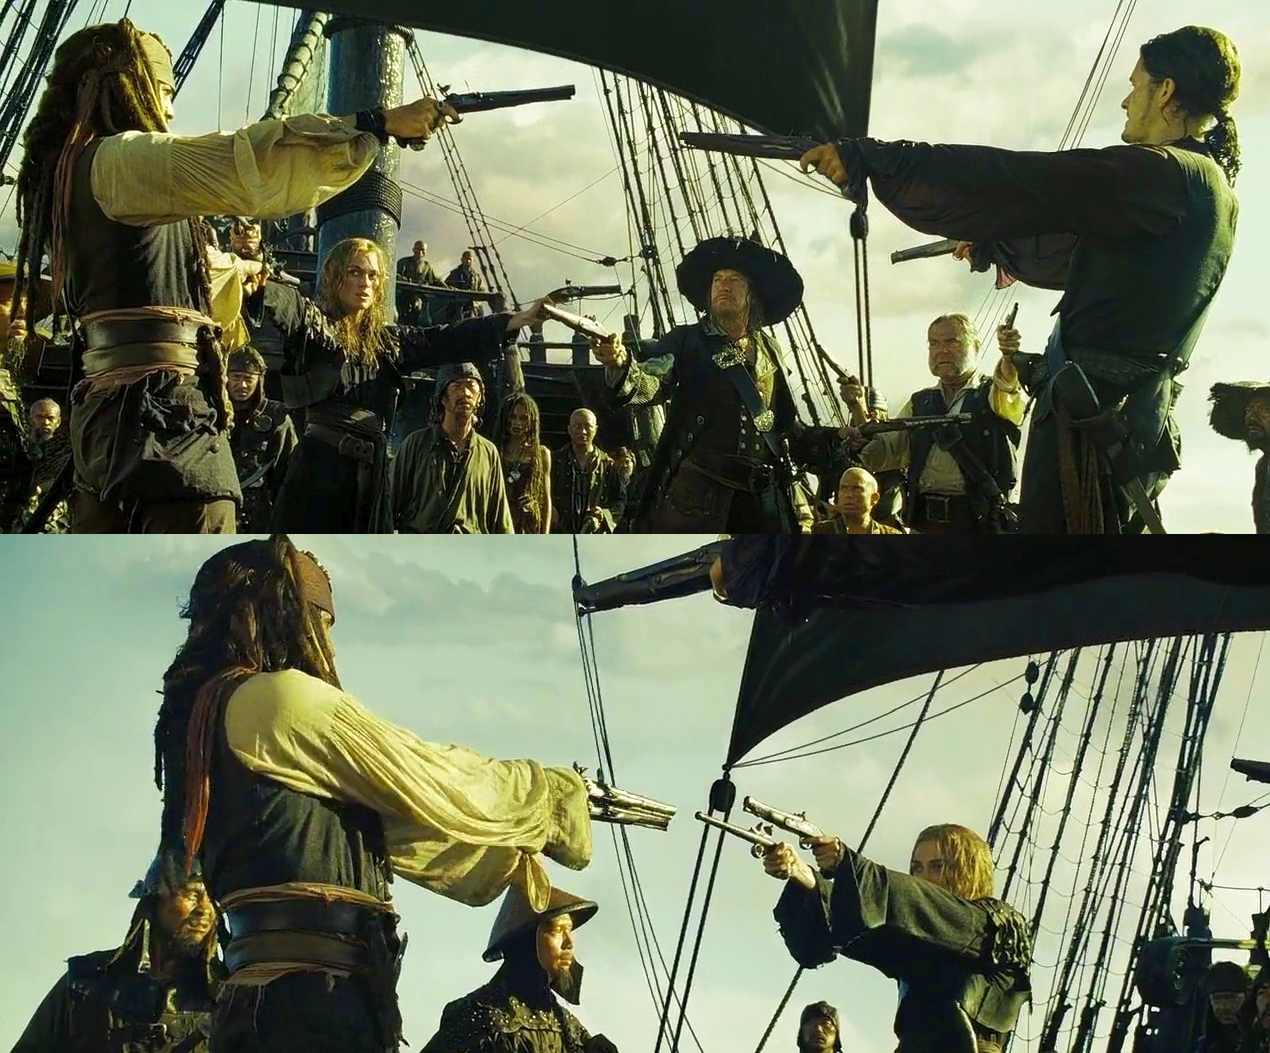 Film Review: 'Pirates of the Caribbean: Dead Men Tell No Tales'